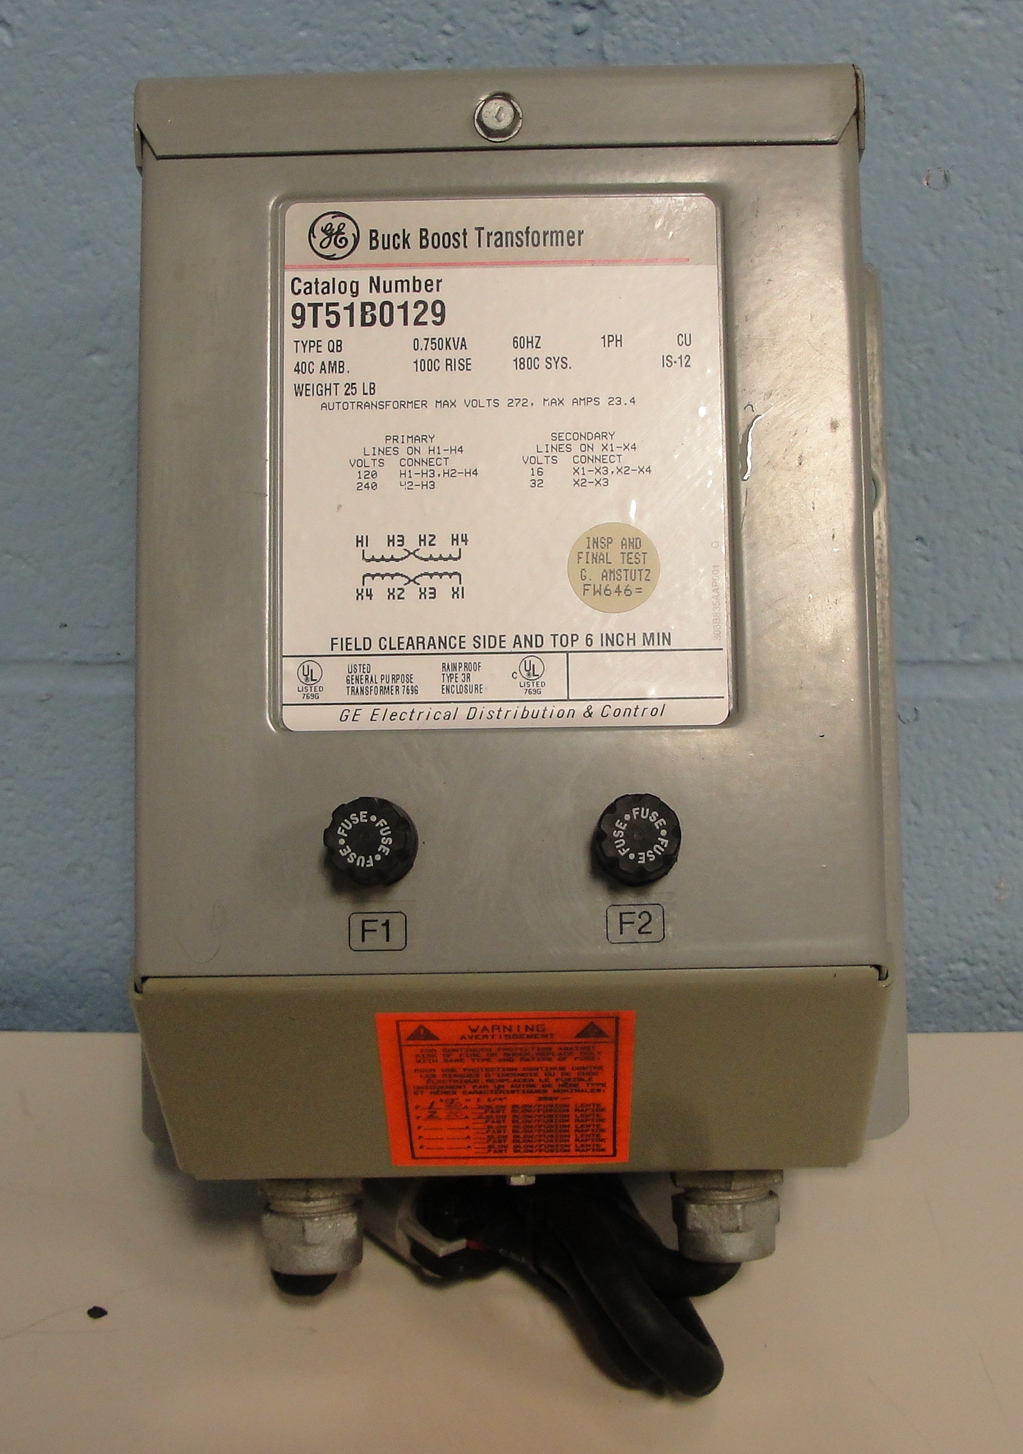 refurbished general electric 9t51b0129 buck boost